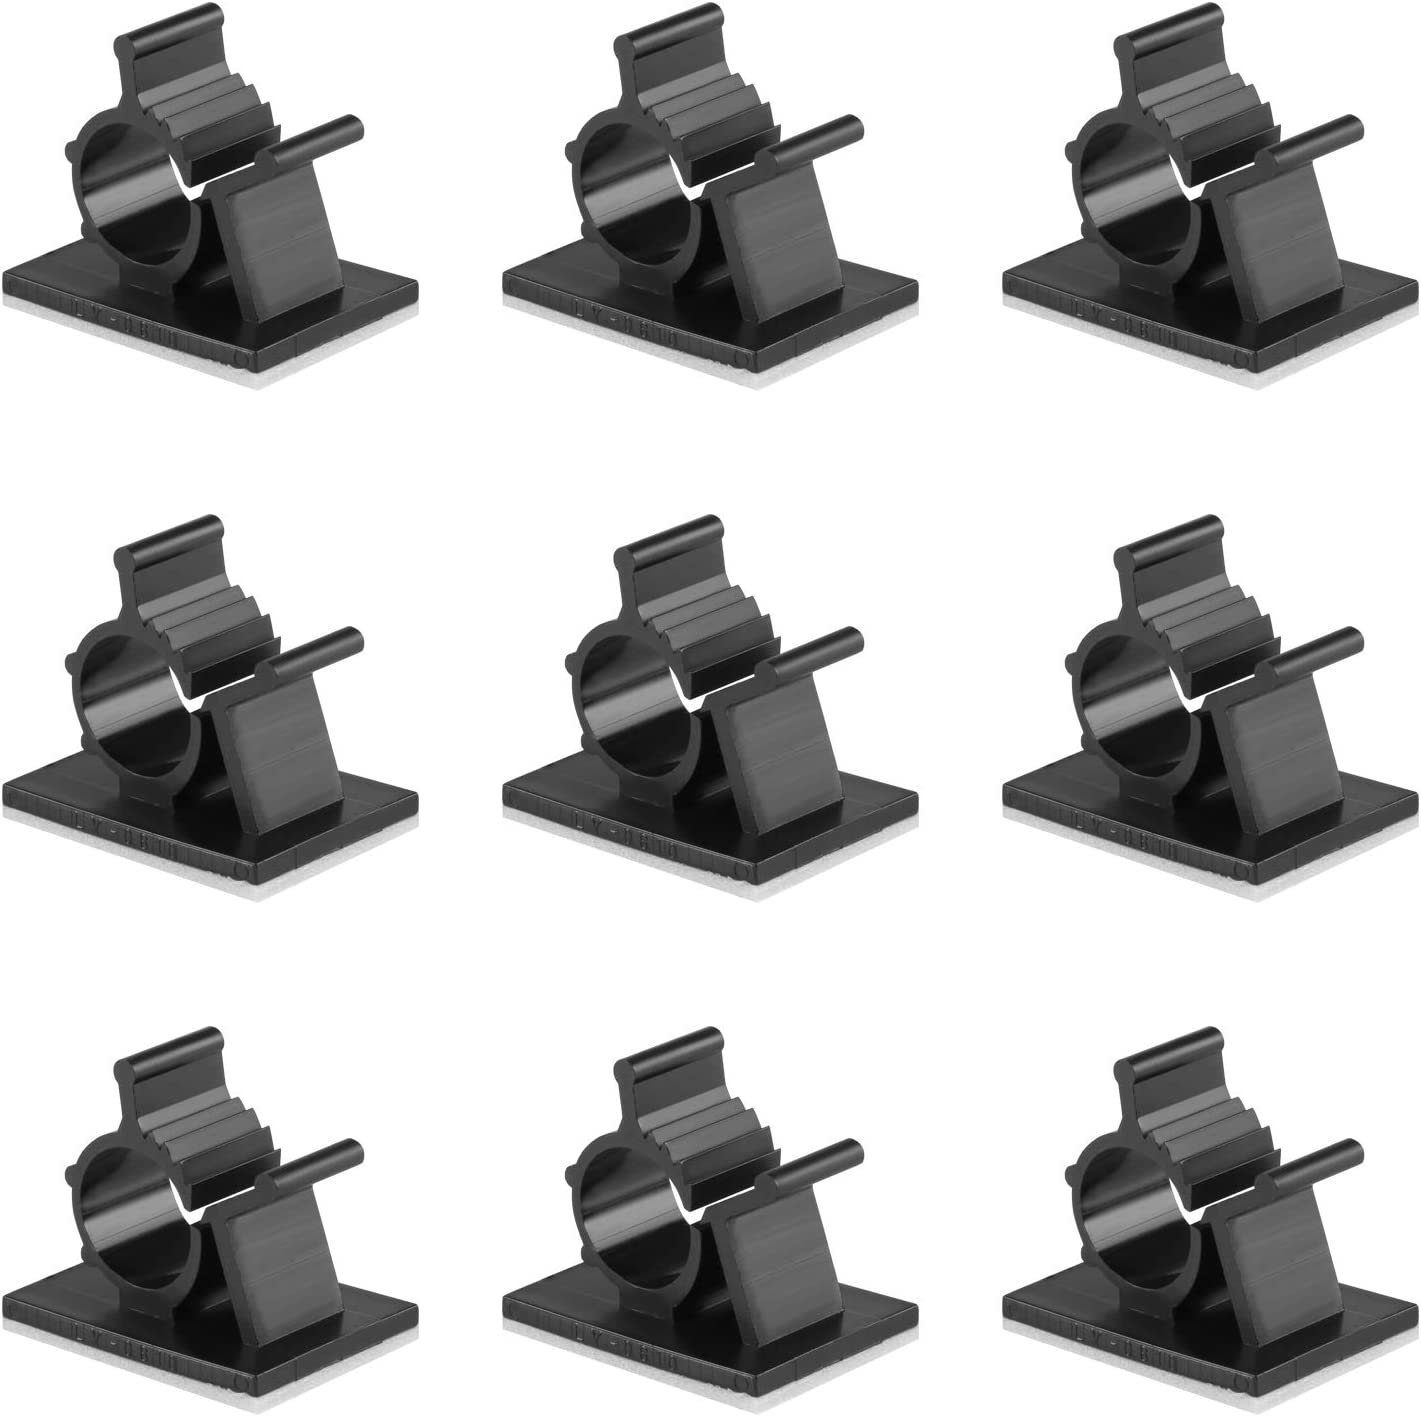 GWHOLE 60 Pcs Adjustable Adhesive Cable Clips Cord Organizer Wire Management for Car, Office and Home